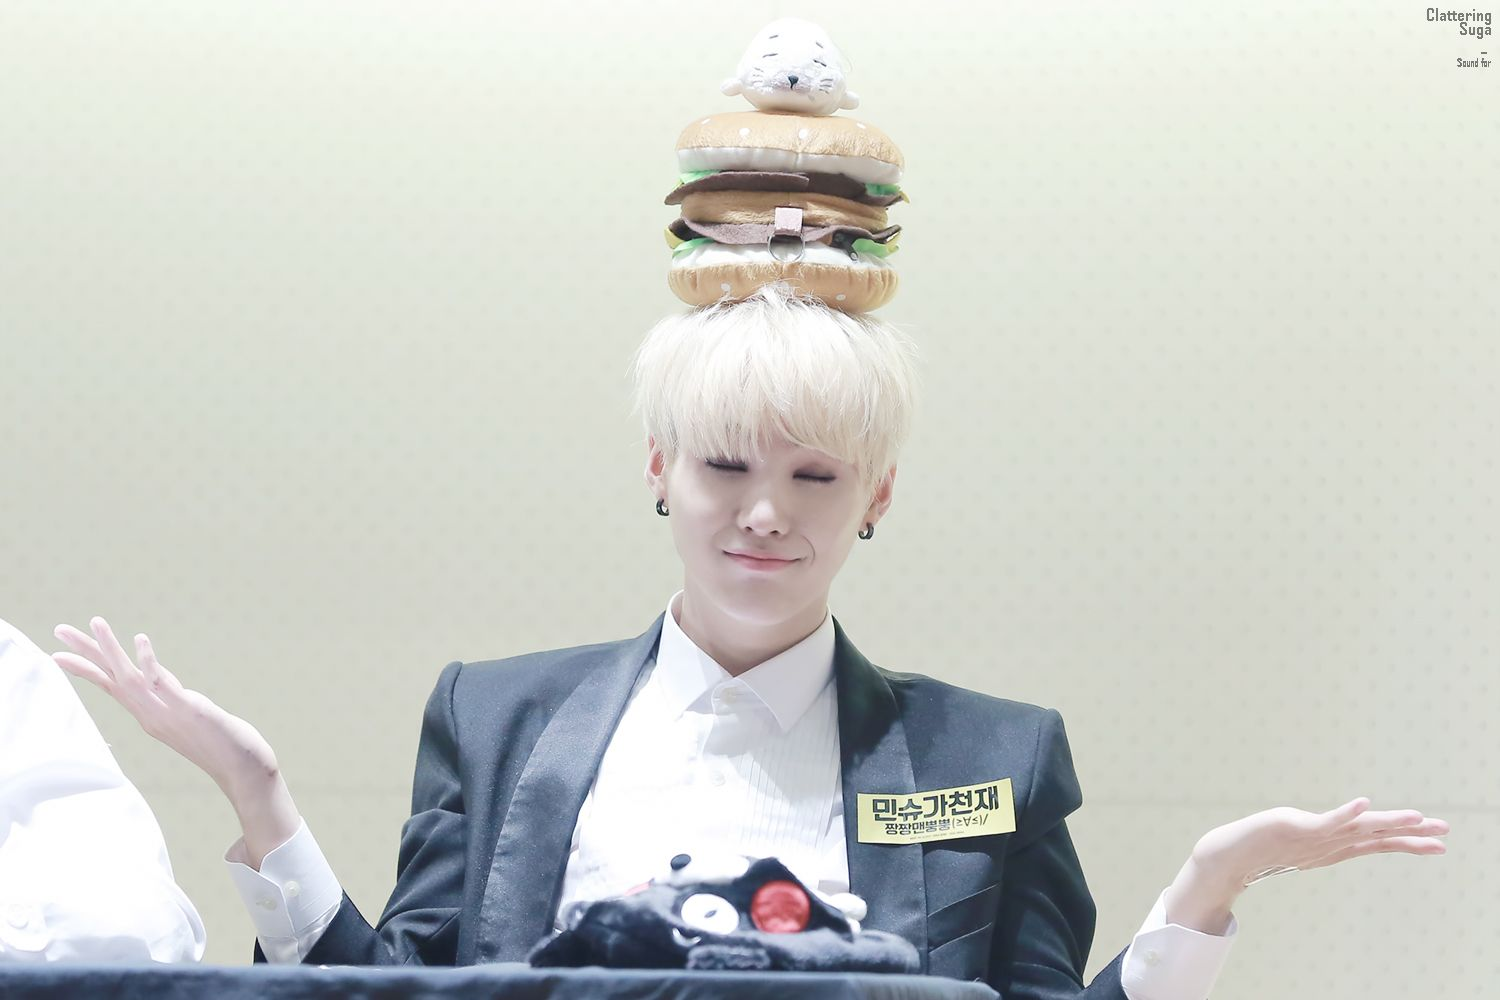 [Picture/Fansitesnap] BTS Special Fansigning 3rd mini album 화양연화 pt.1 (Yeuido) [150704] | btsdiary